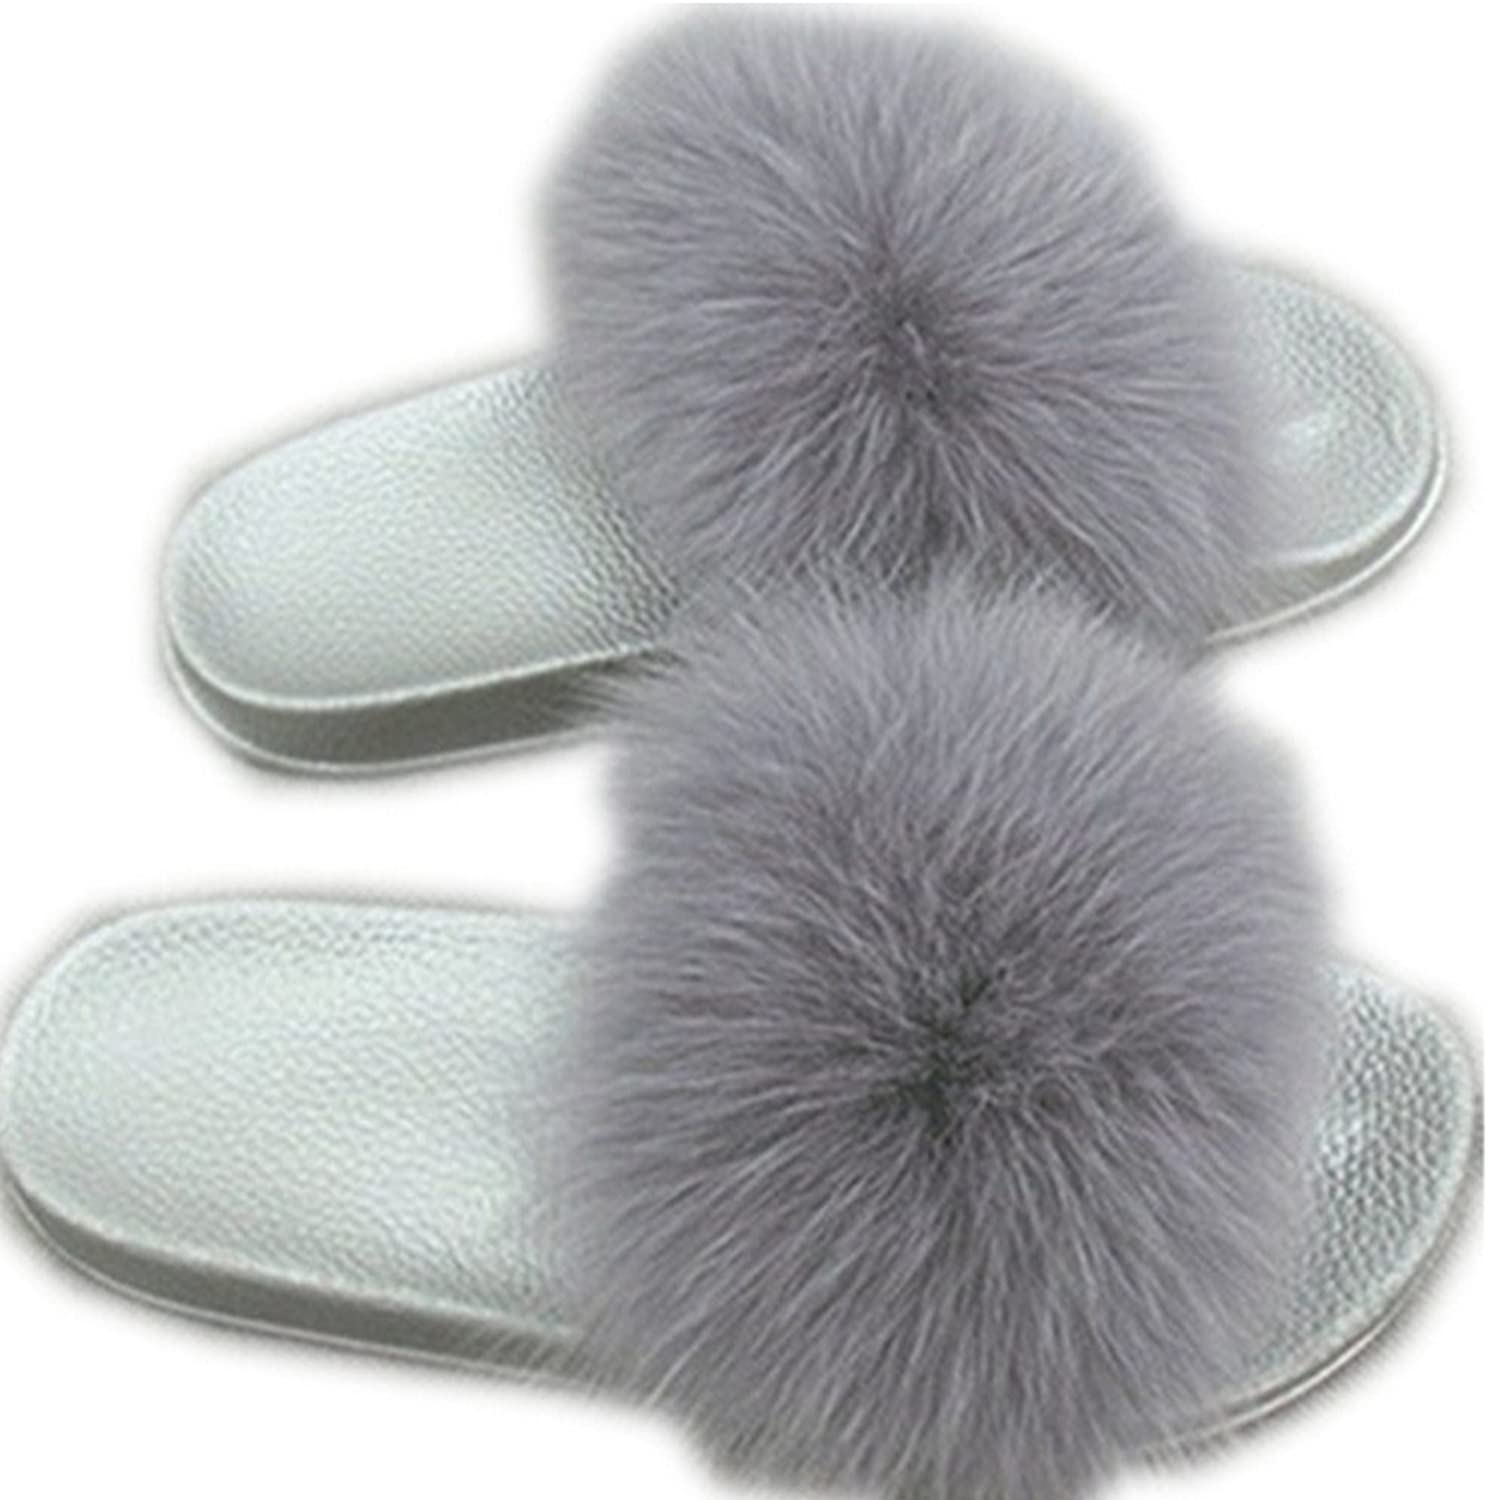 QMFUR Women Real Fox Fur Slippers Fashion Slides Flat Silver Soft Summer shoes for Girls (12, Grey)